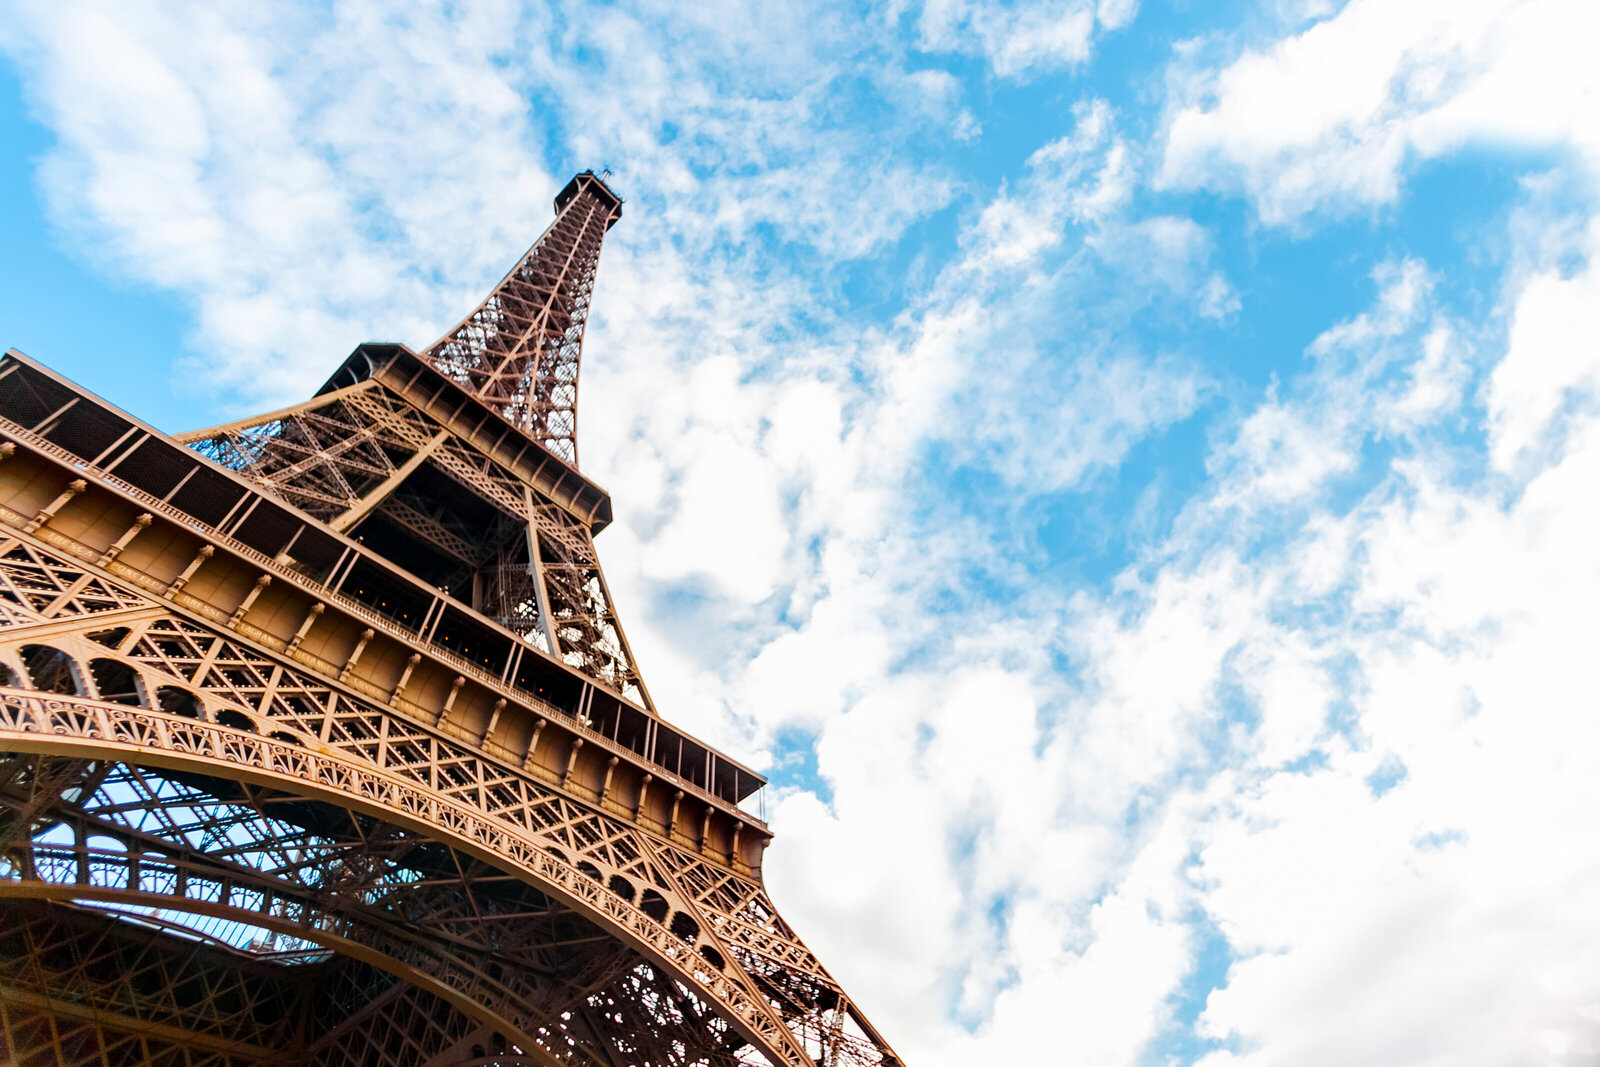 012-KBP-Eiffel-Tower-Blue-Sky